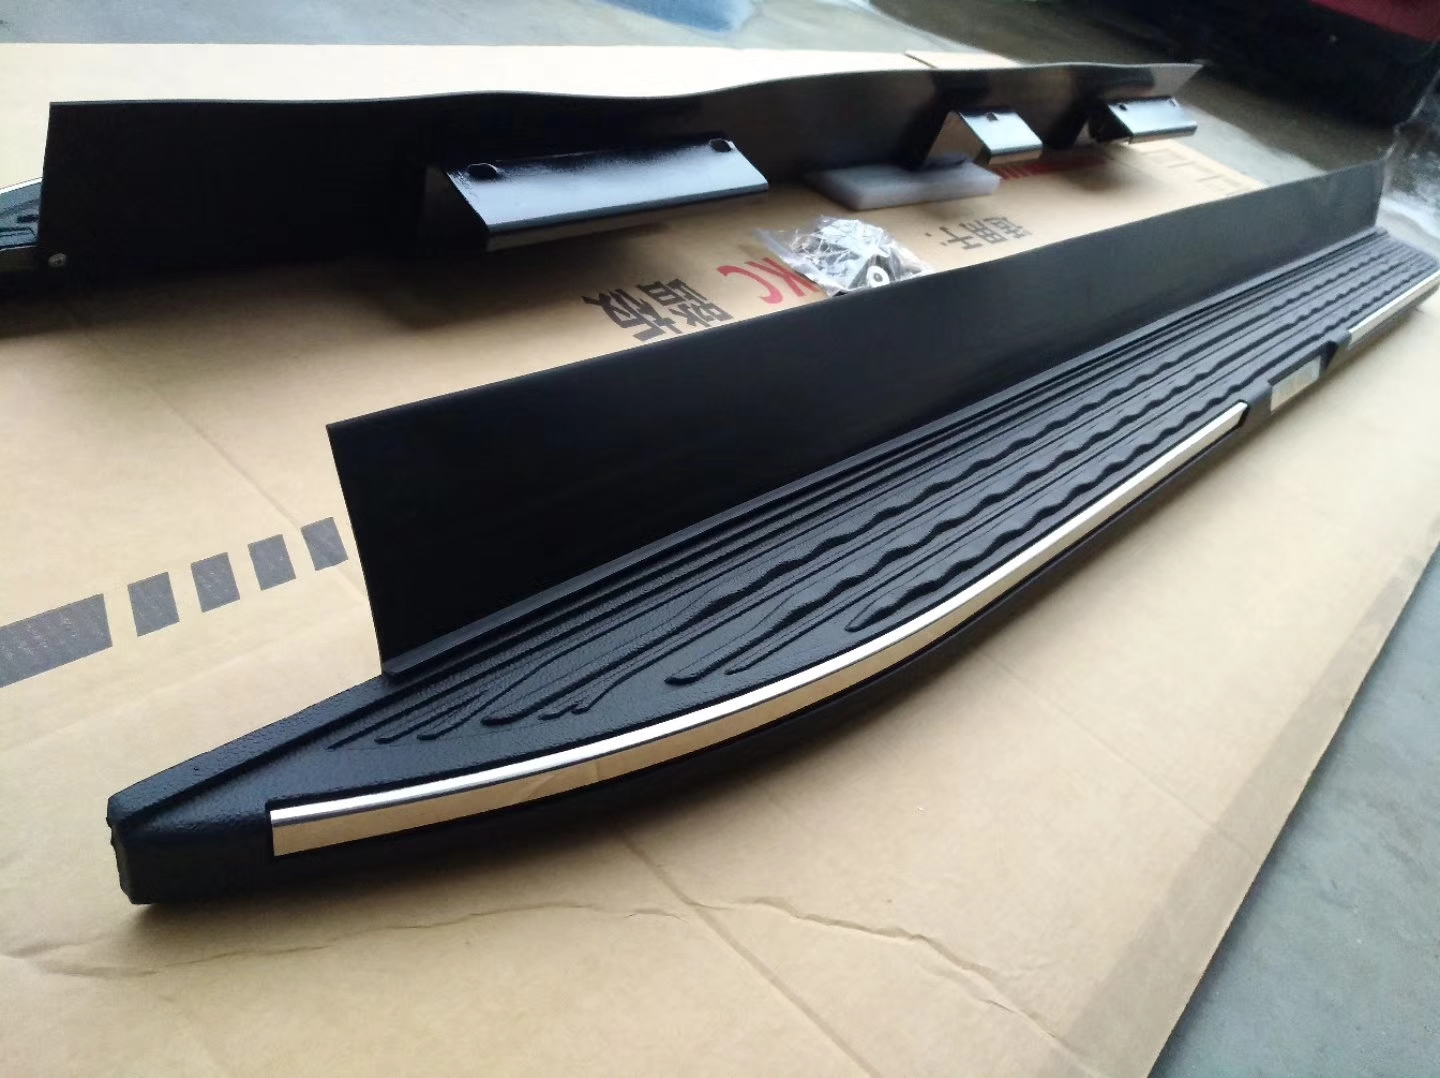 oem running board for toyota highlander suv view running board ultiauto product details from changzhou paragon vehicle accessories co ltd on alibaba com oem running board for toyota highlander